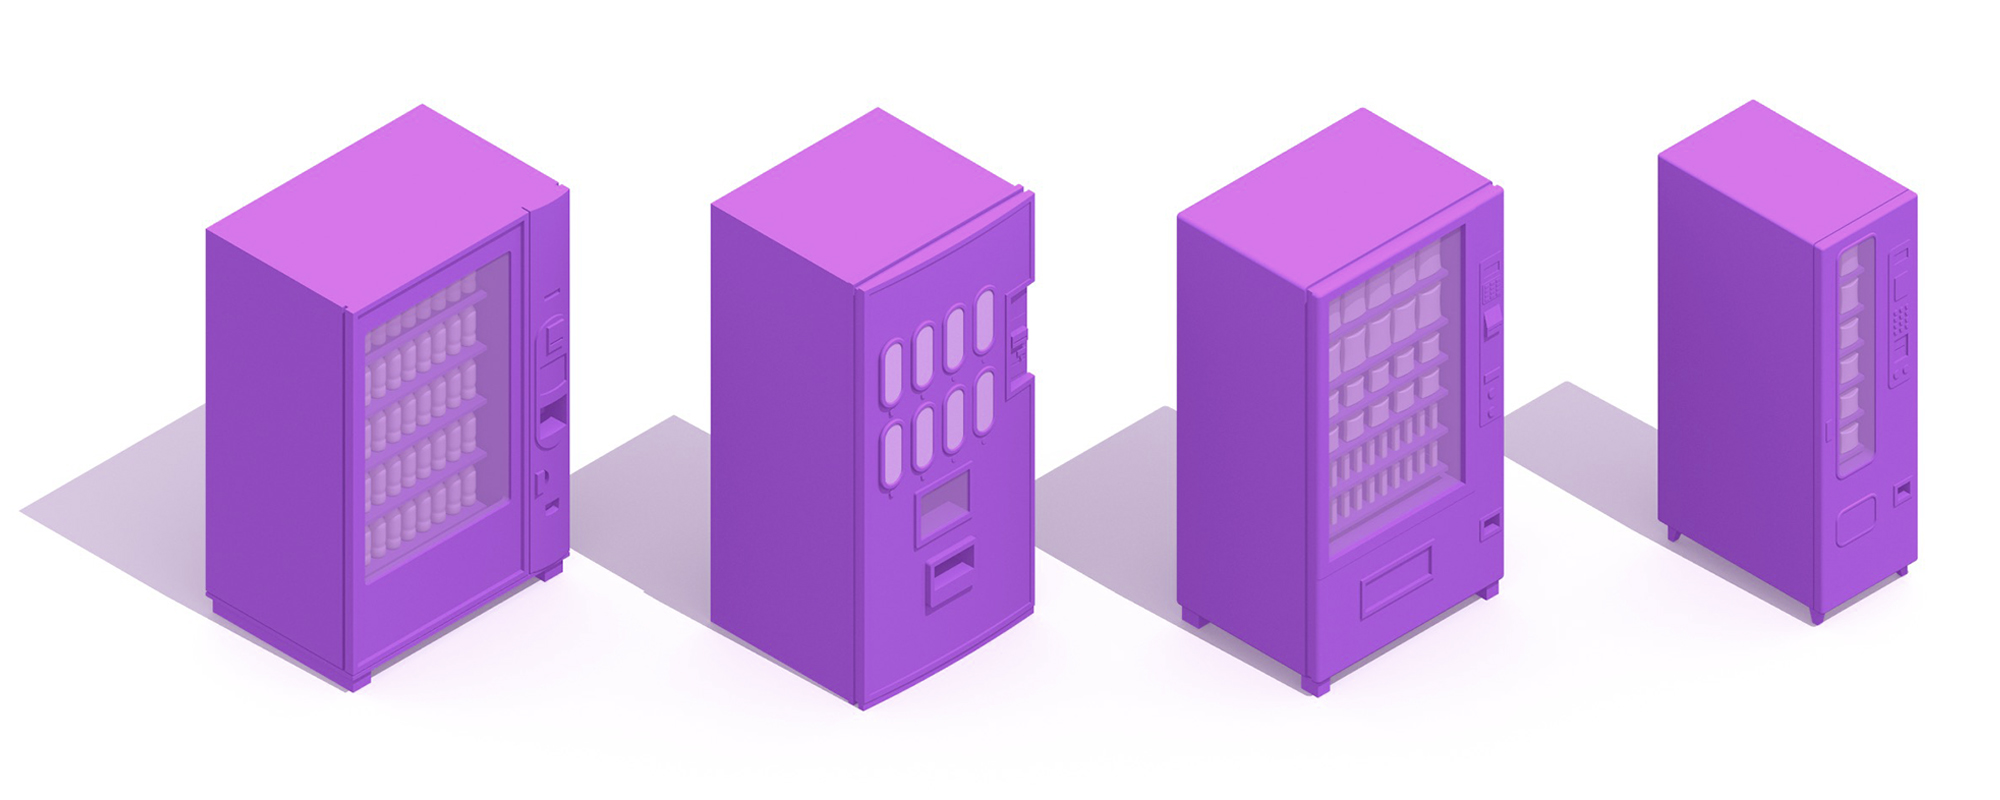 3D perspectives of a variety of Vending Machines showing an assortment of sizes, functions, styles, and designs